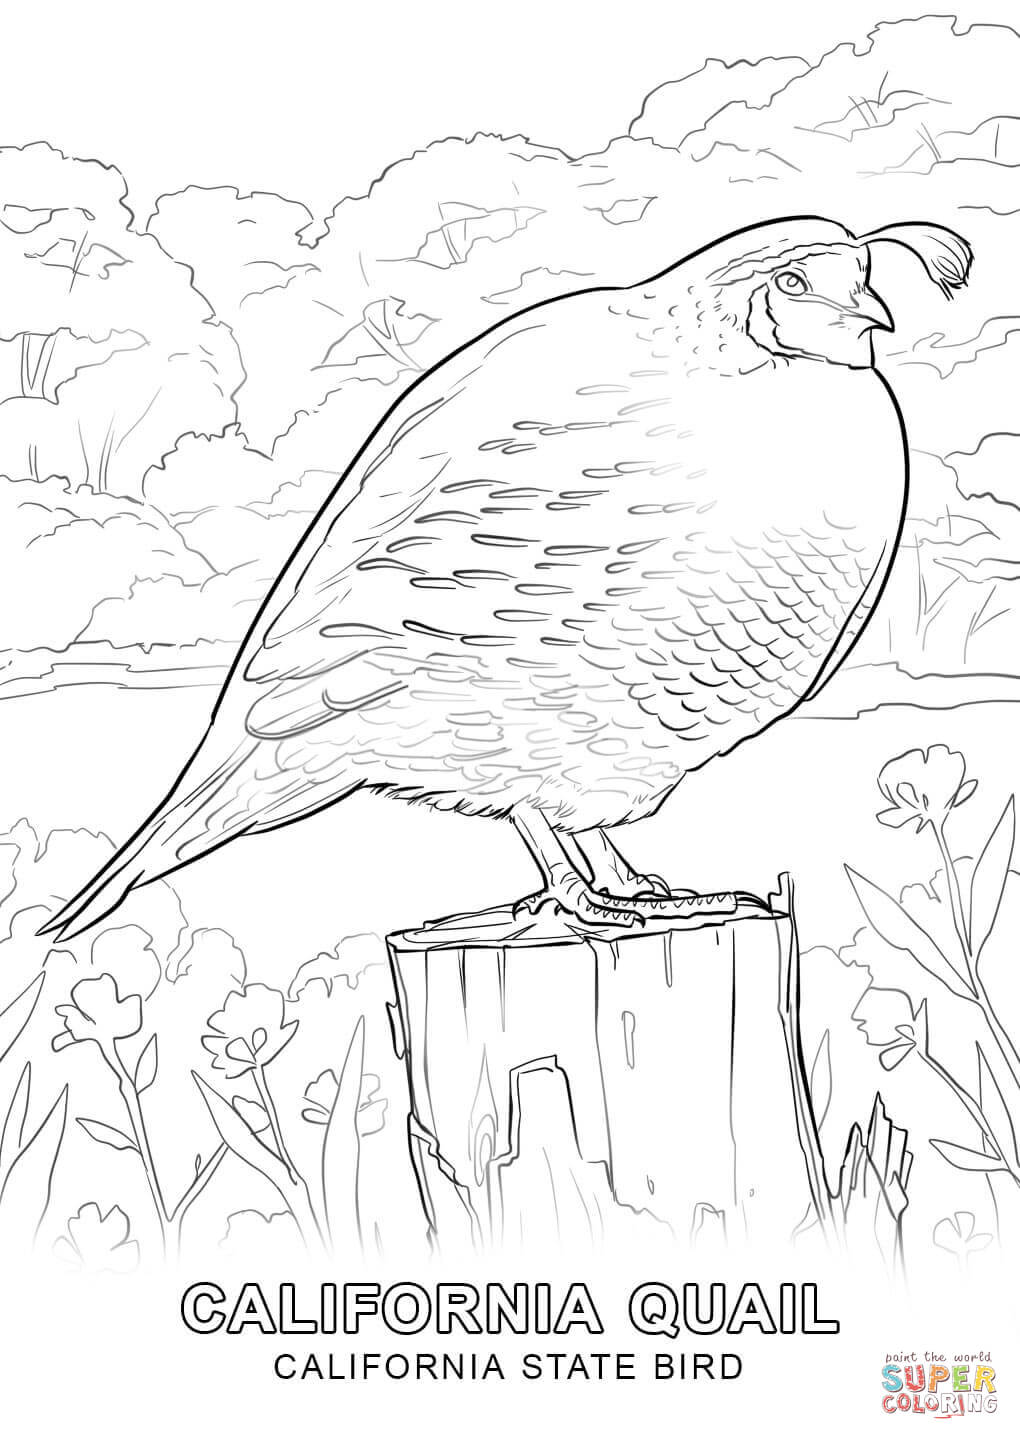 iowa state bird american eastern goldfinch iowa state bird coloring page bird iowa state